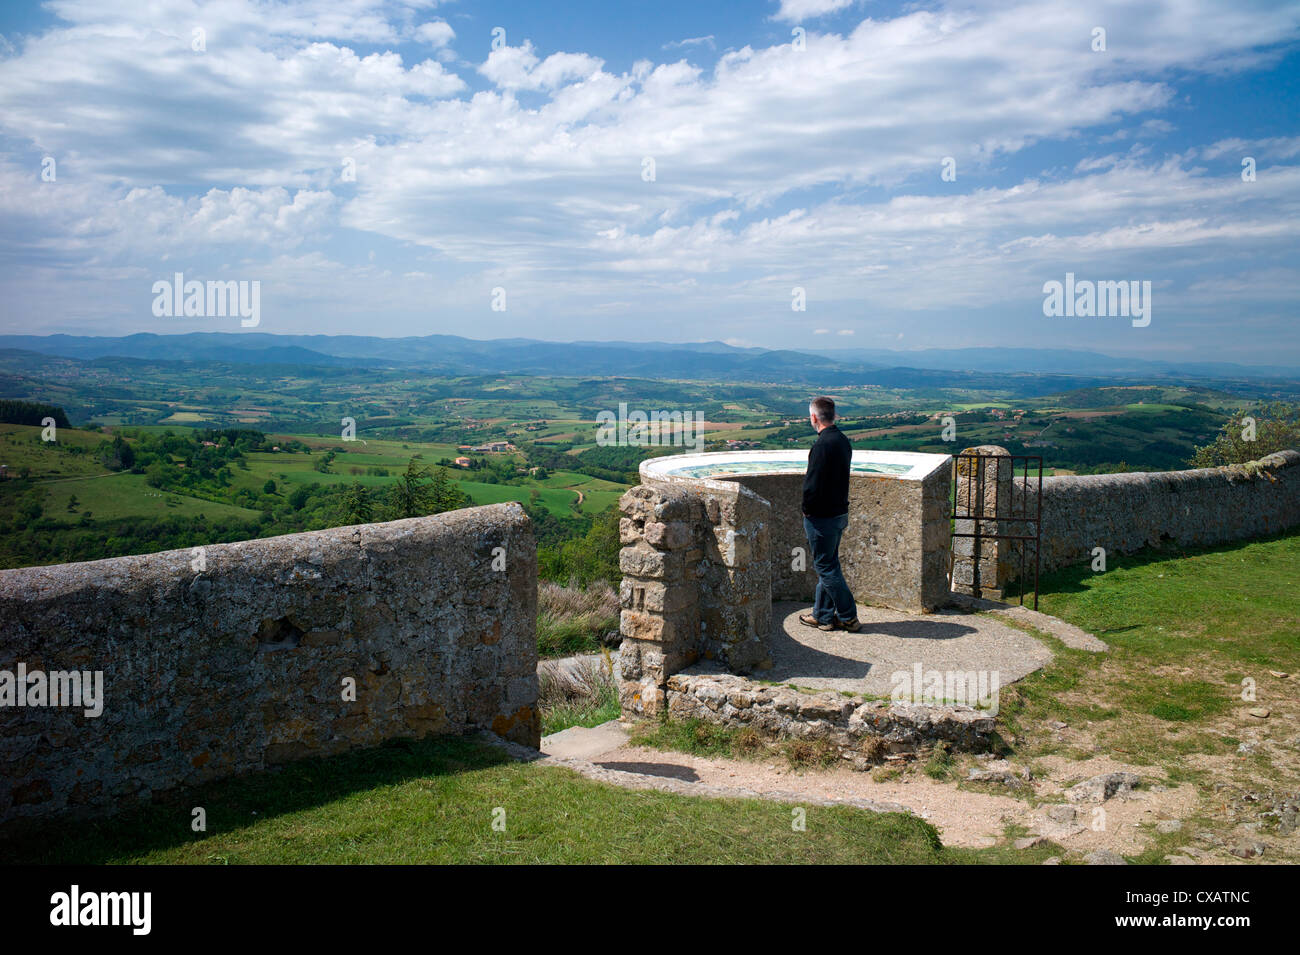 Viewpoint and orientation table at Saint Romain de Lerps, Ardeche, France, Europe - Stock Image